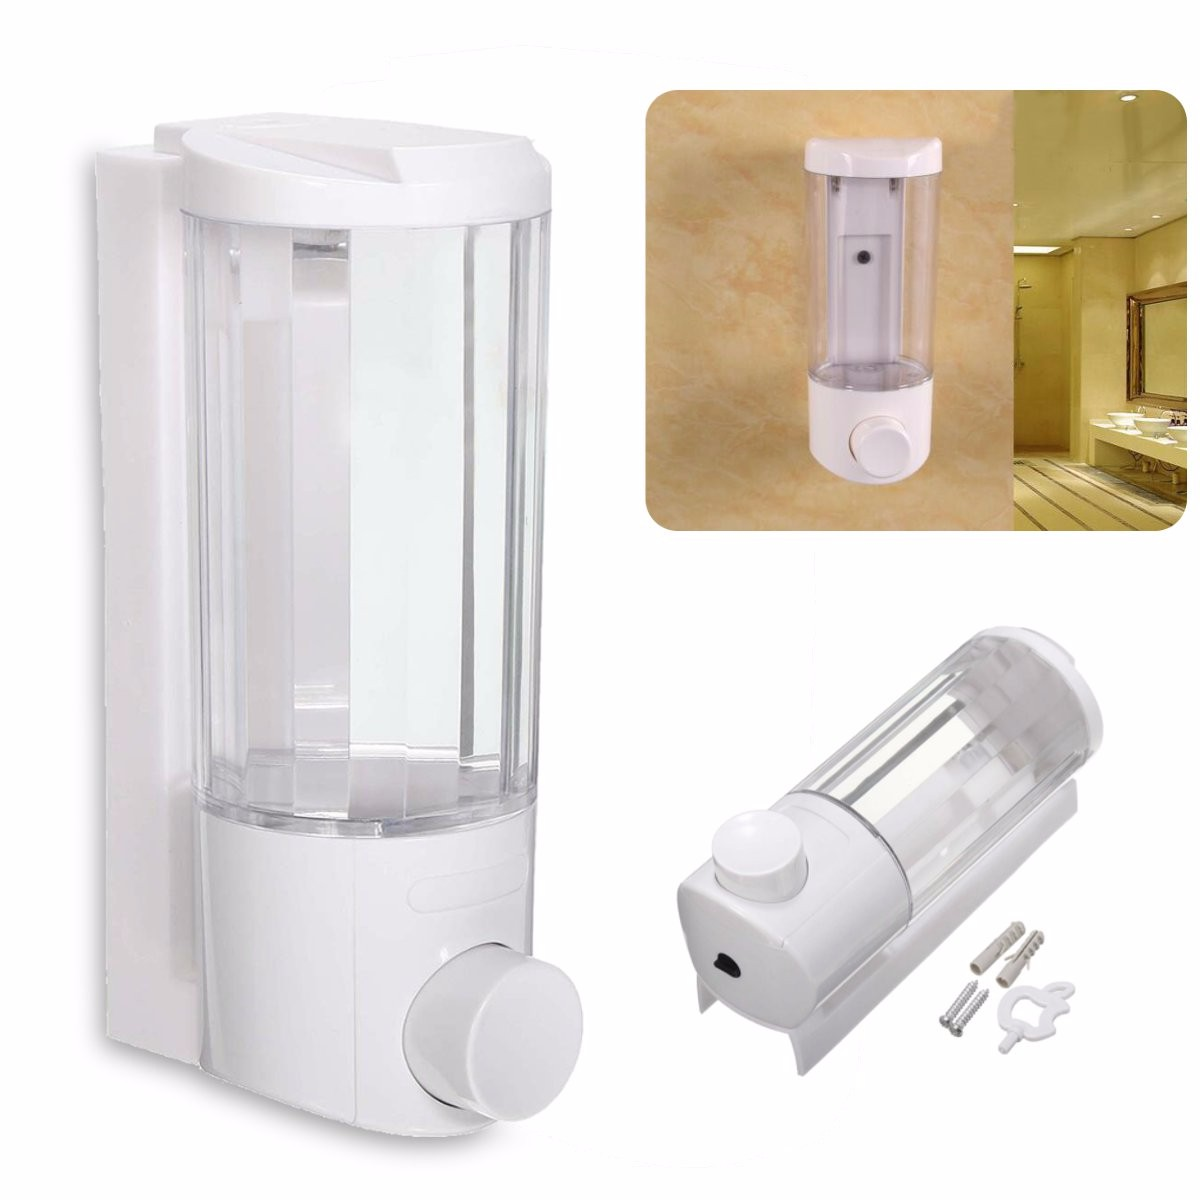 Soap And Shampoo Dispensers For Showers Kitchen Sanitizer Bathroom Liquid Soap Dispenser Wall